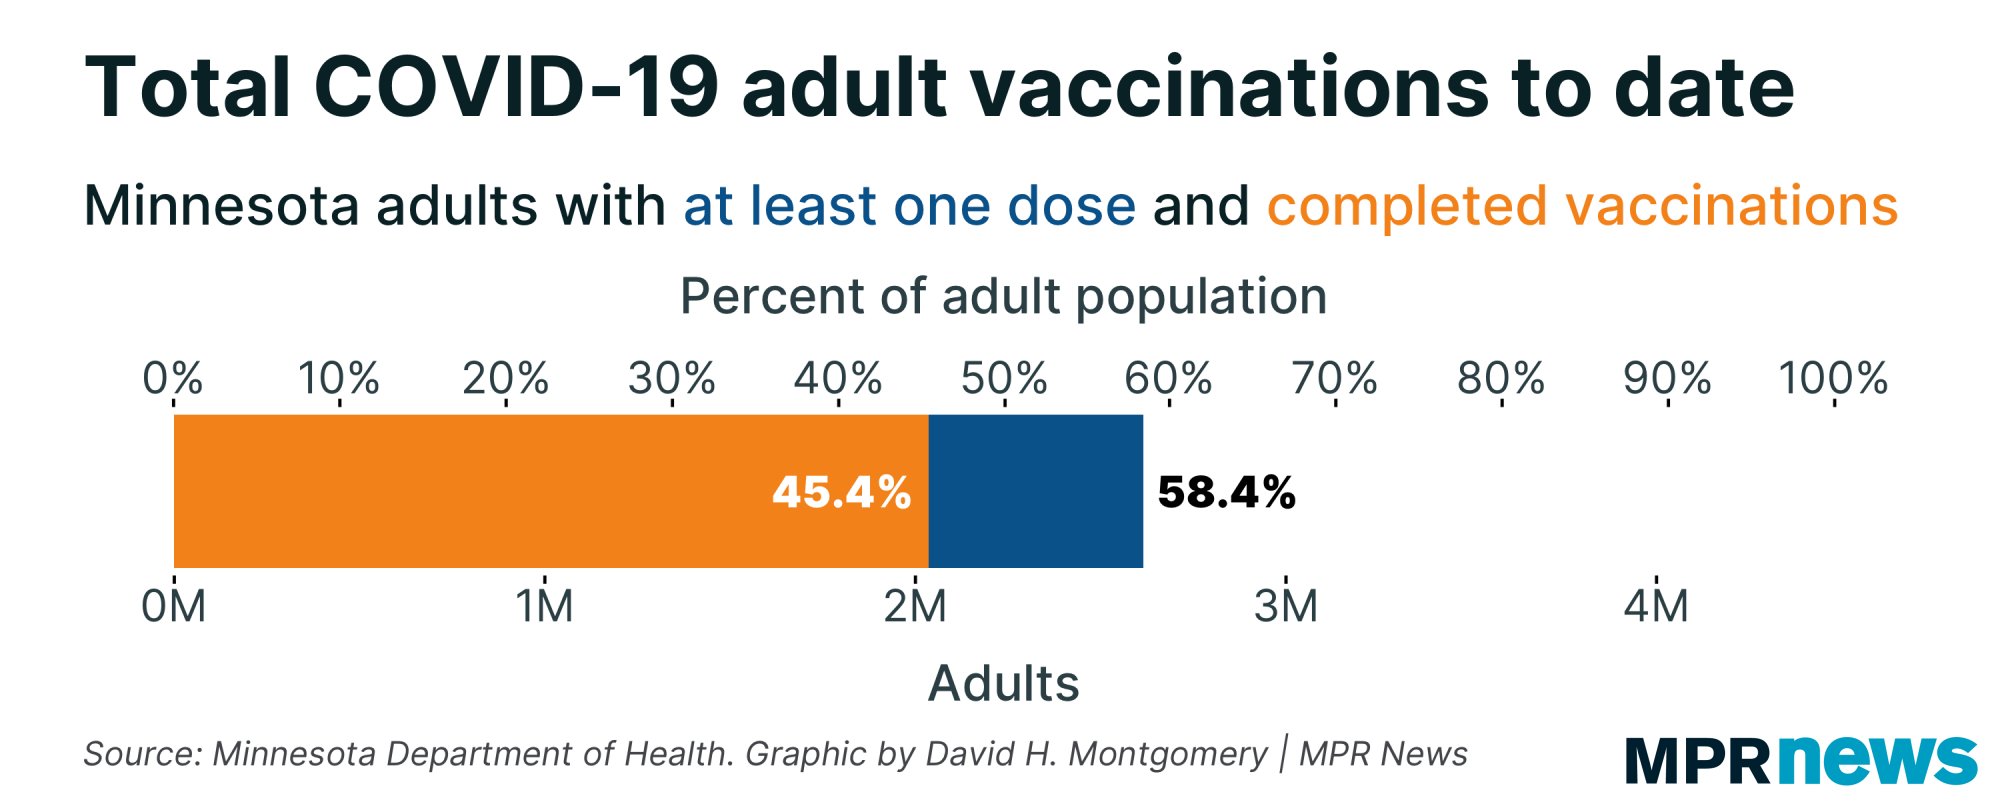 Total COVID-19 adult vaccinations to date